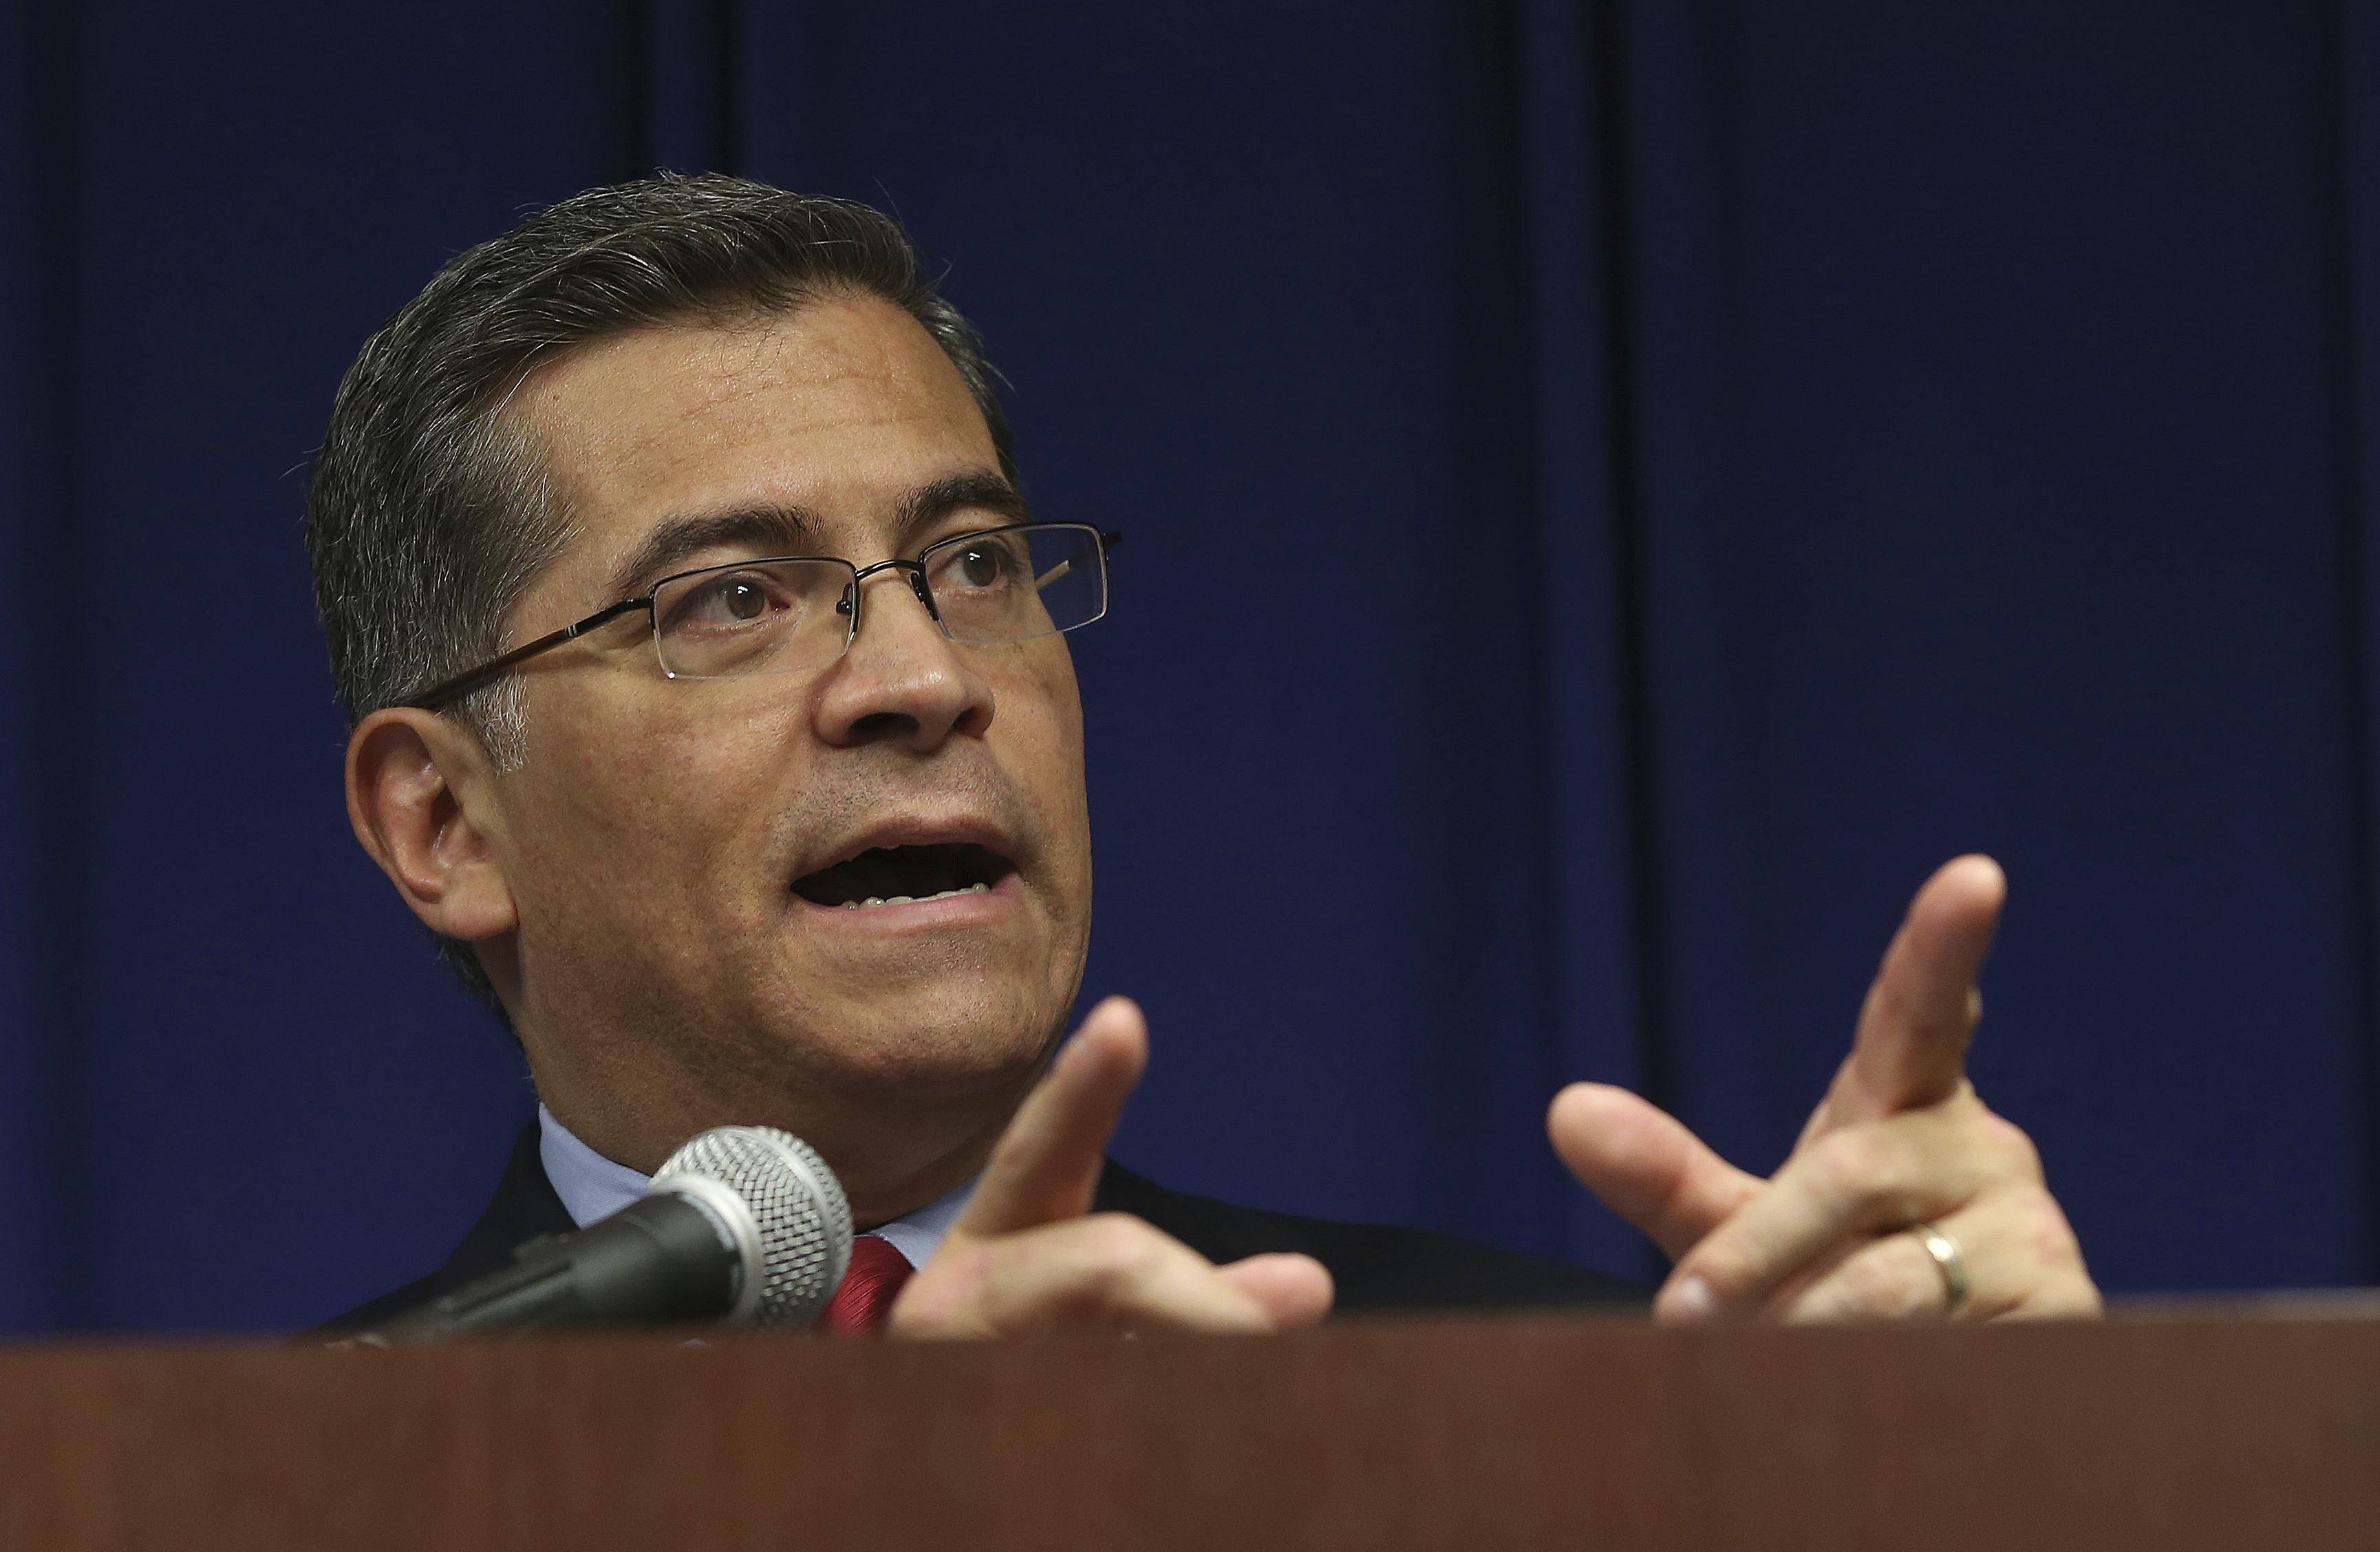 California AG's Planned Parenthood ties under fire in undercover pro-life investigators case